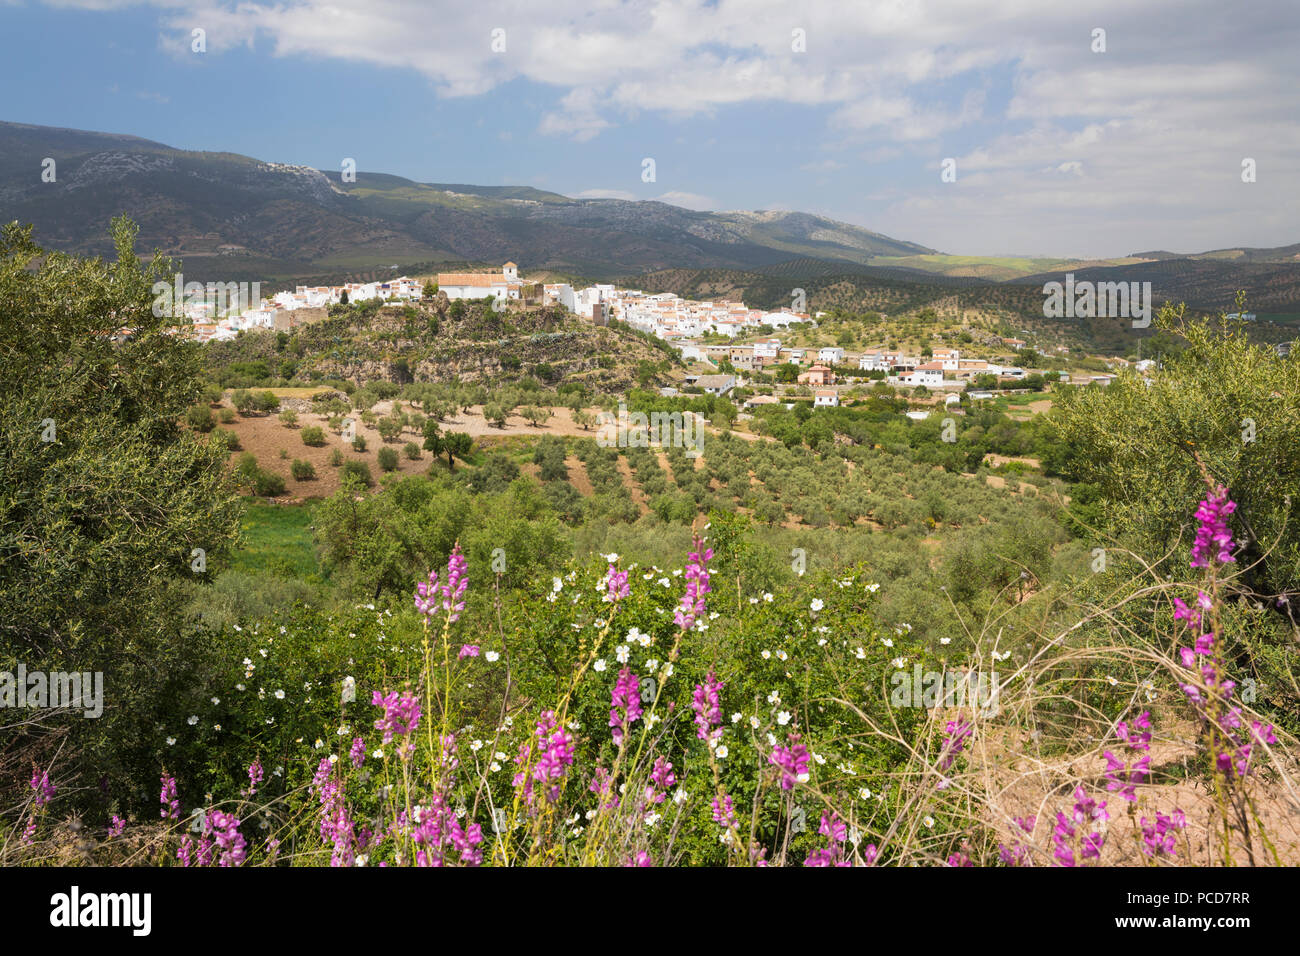 View in spring over the white Andalucian village of El Burgo, Malaga Province, Andalucia, Spain, Europe - Stock Image